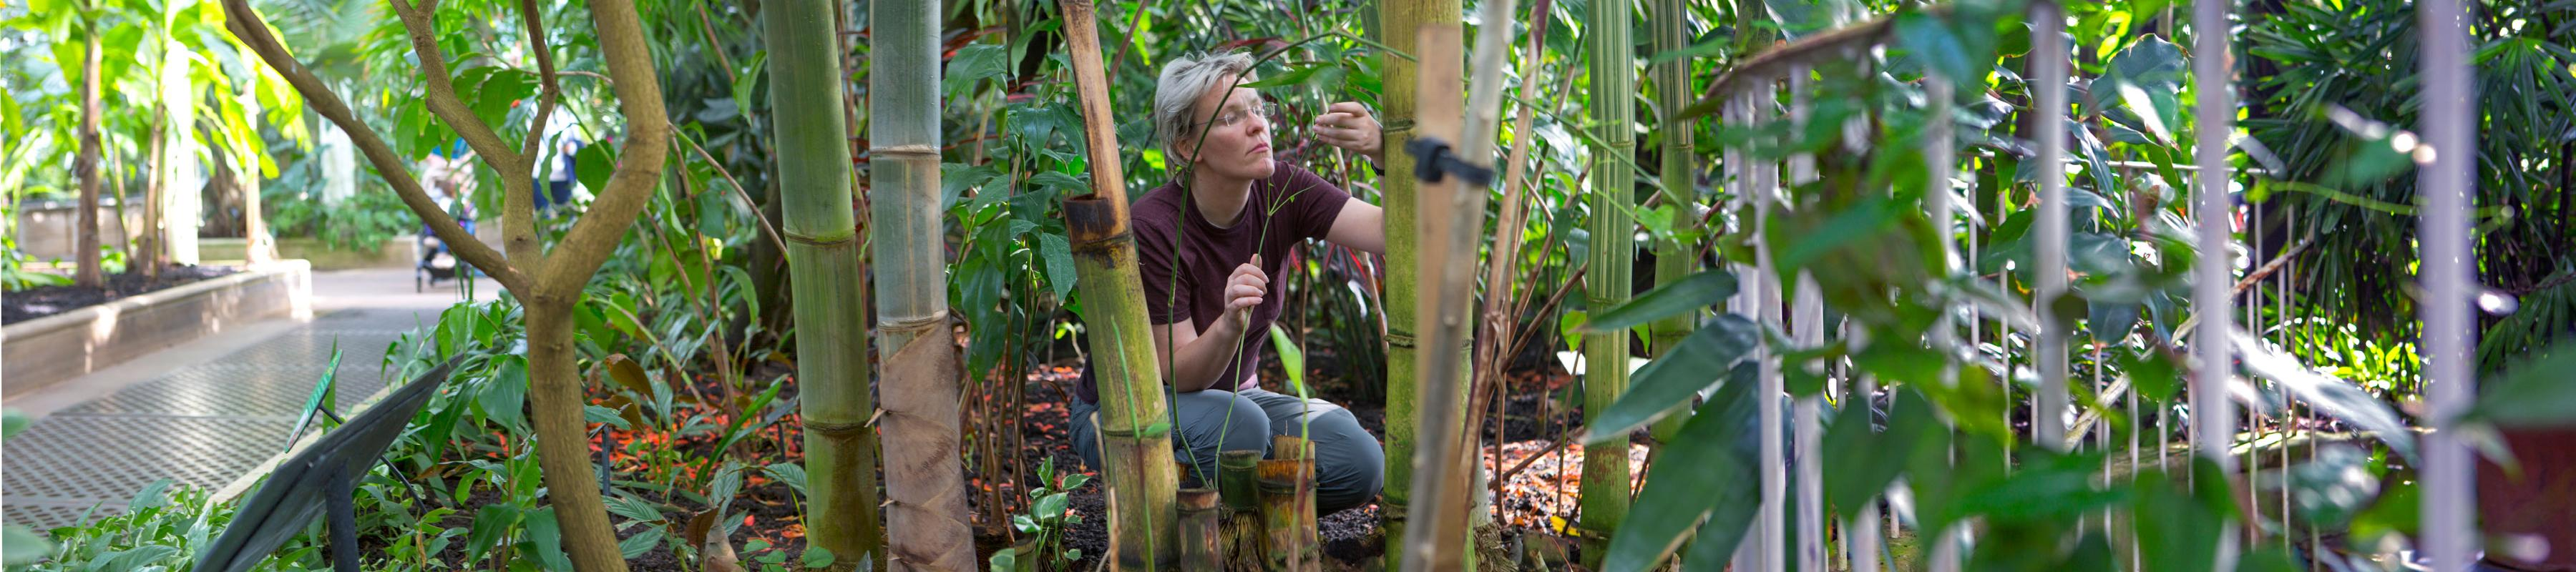 Researcher in Palm House looking at Bamboo